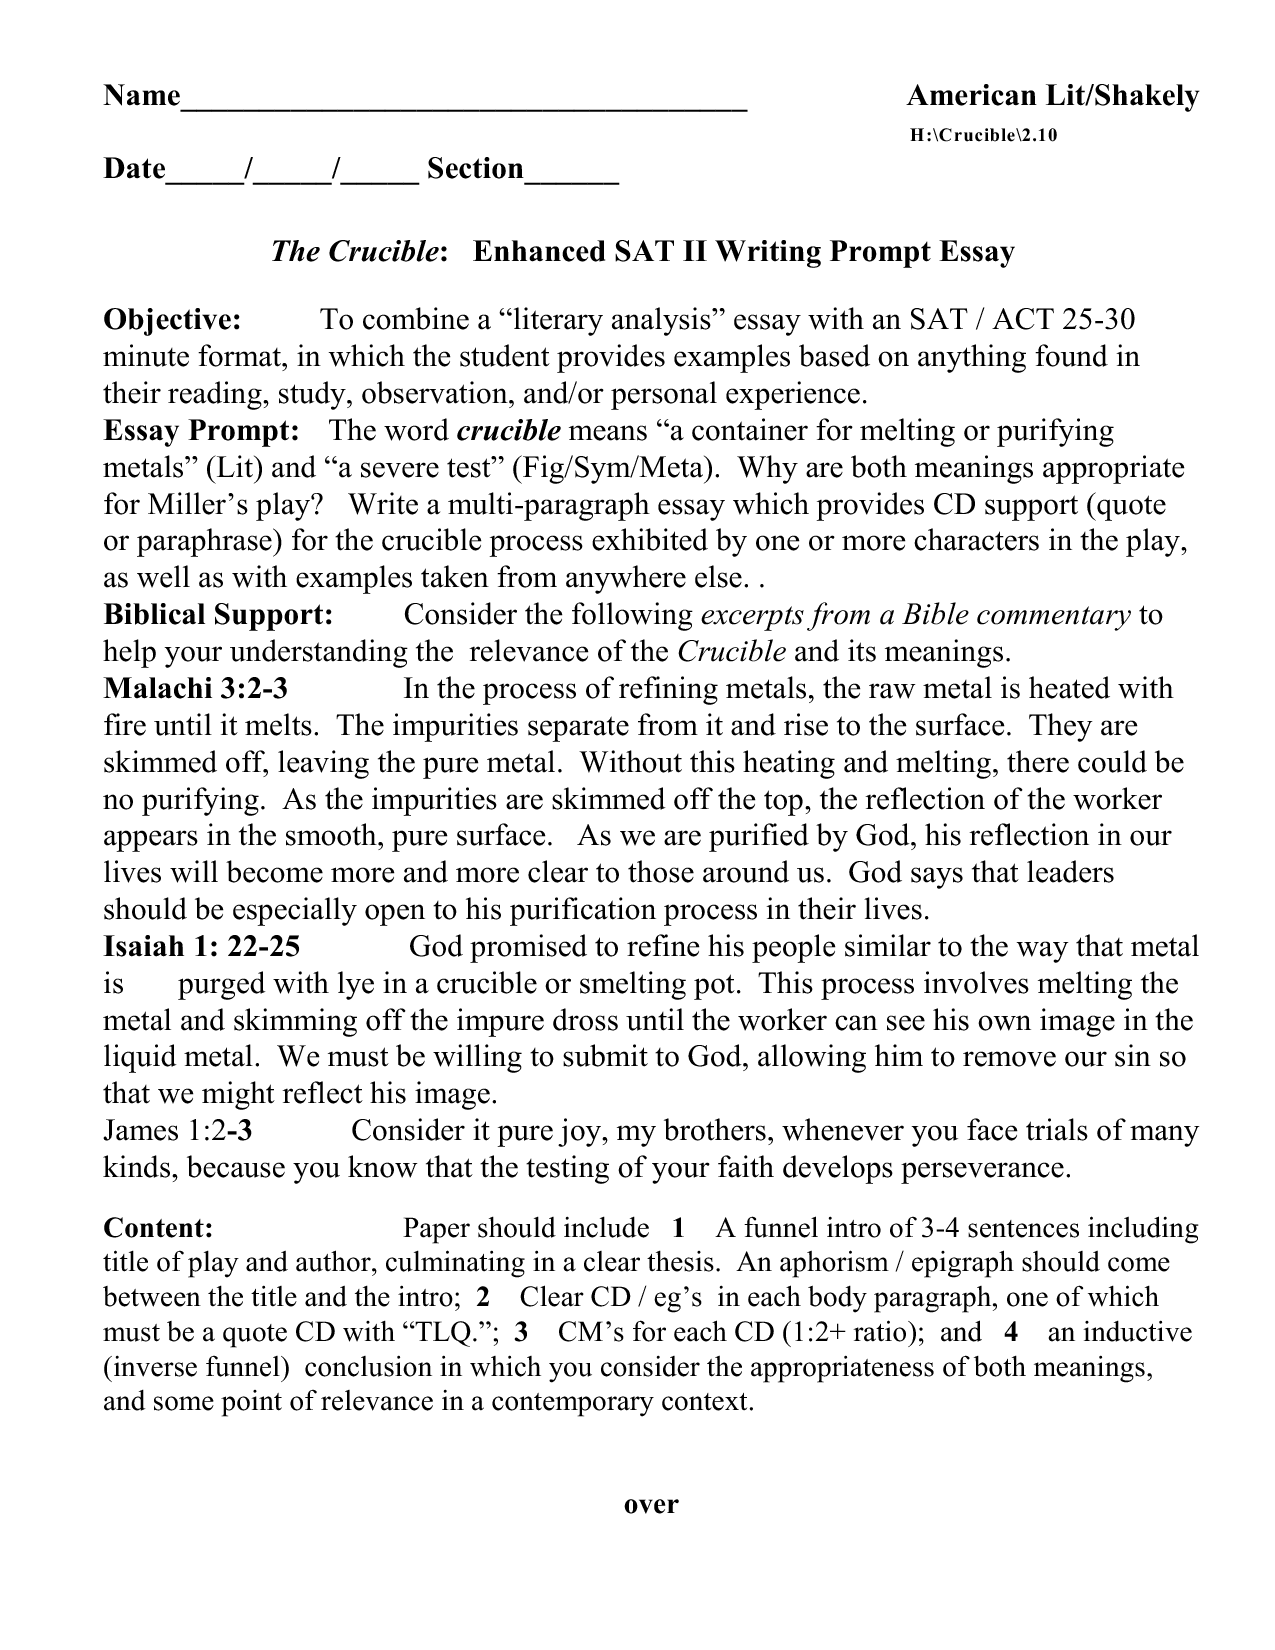 006 Sat Essays Quotes Quotesgram Is There An On The L Singular Essay Examples Writing Strategies Pdf 888 2018 Full